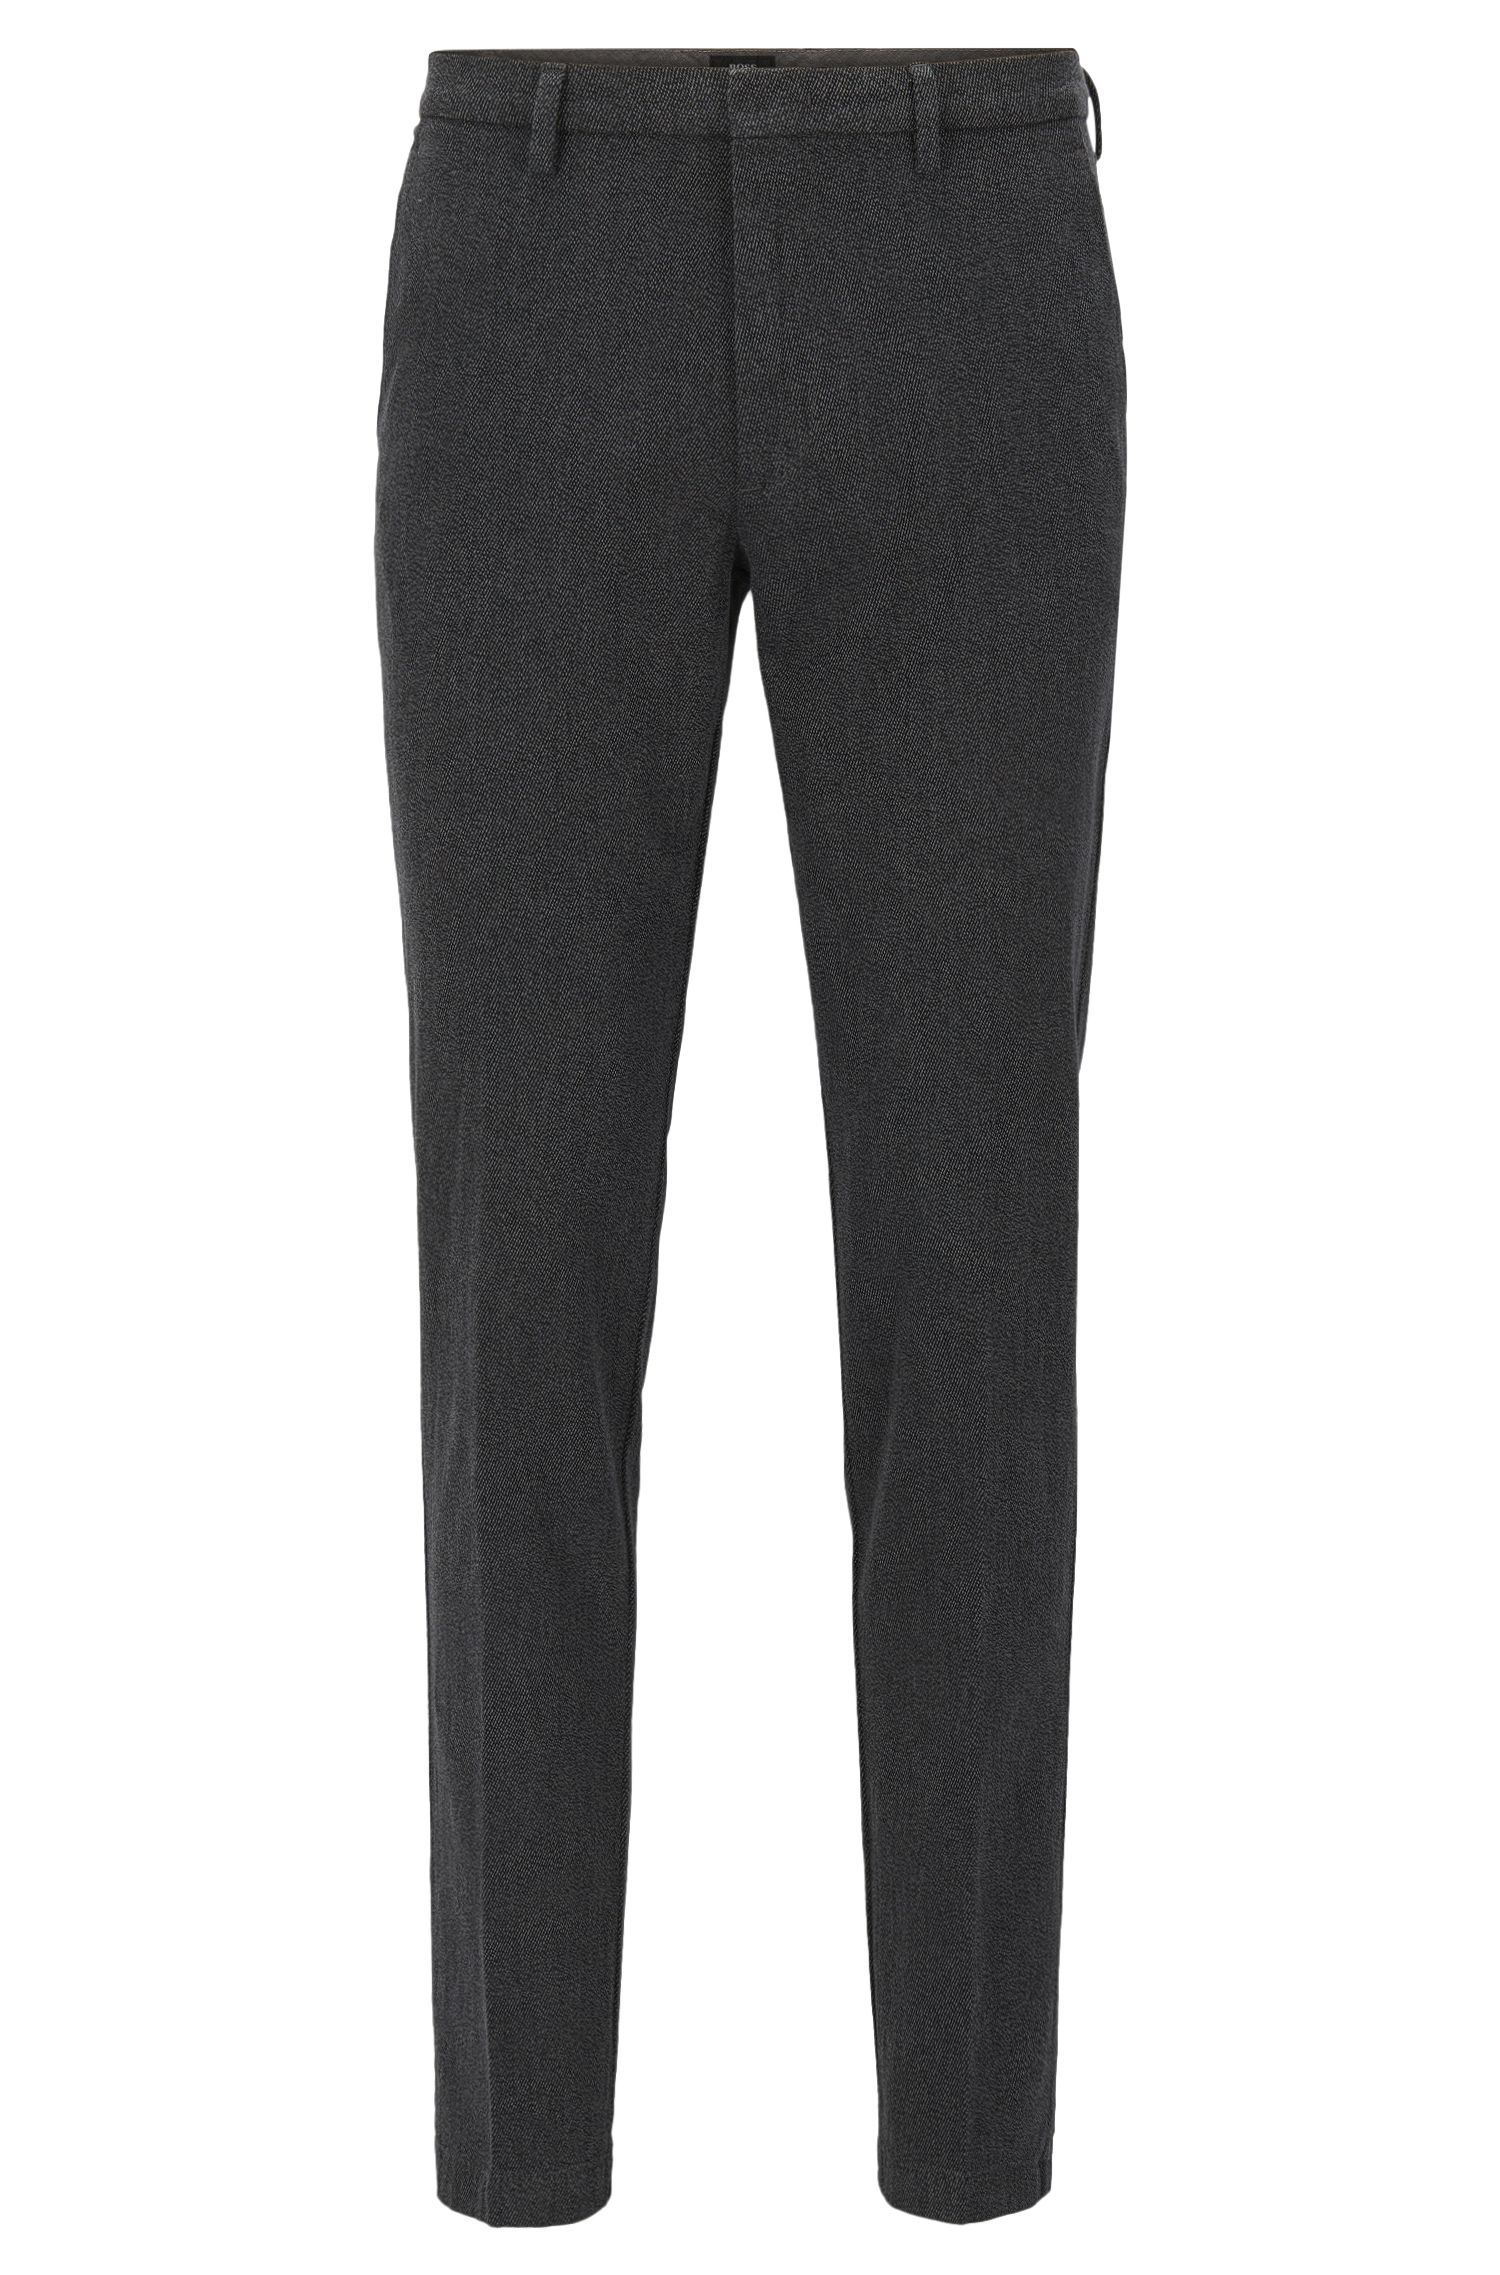 Cotton Stretch Twill Pants, Slim Fit | Kaito W